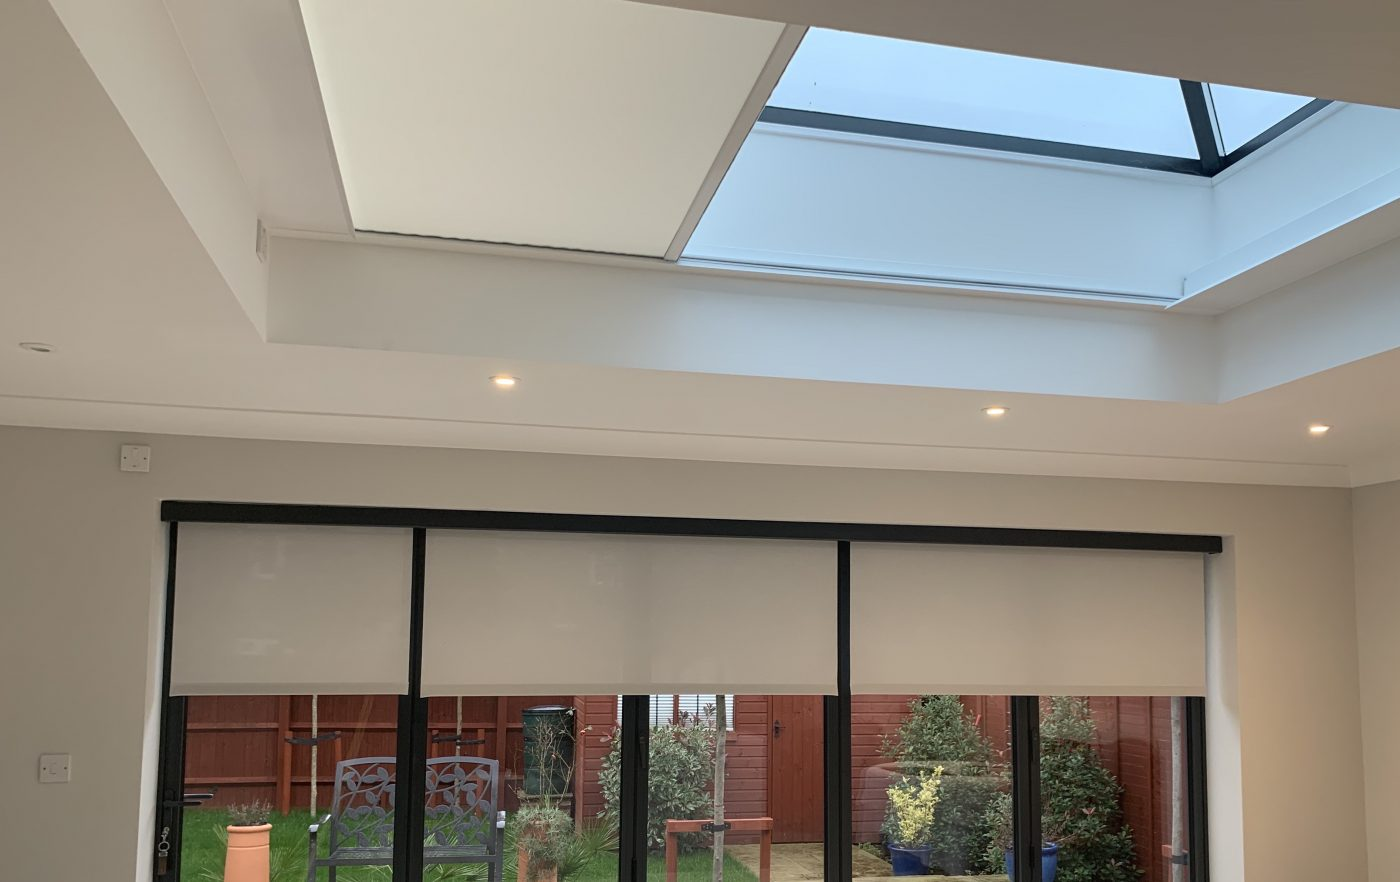 White Roof Lantern Electric Blinds - The Electric Blind Company